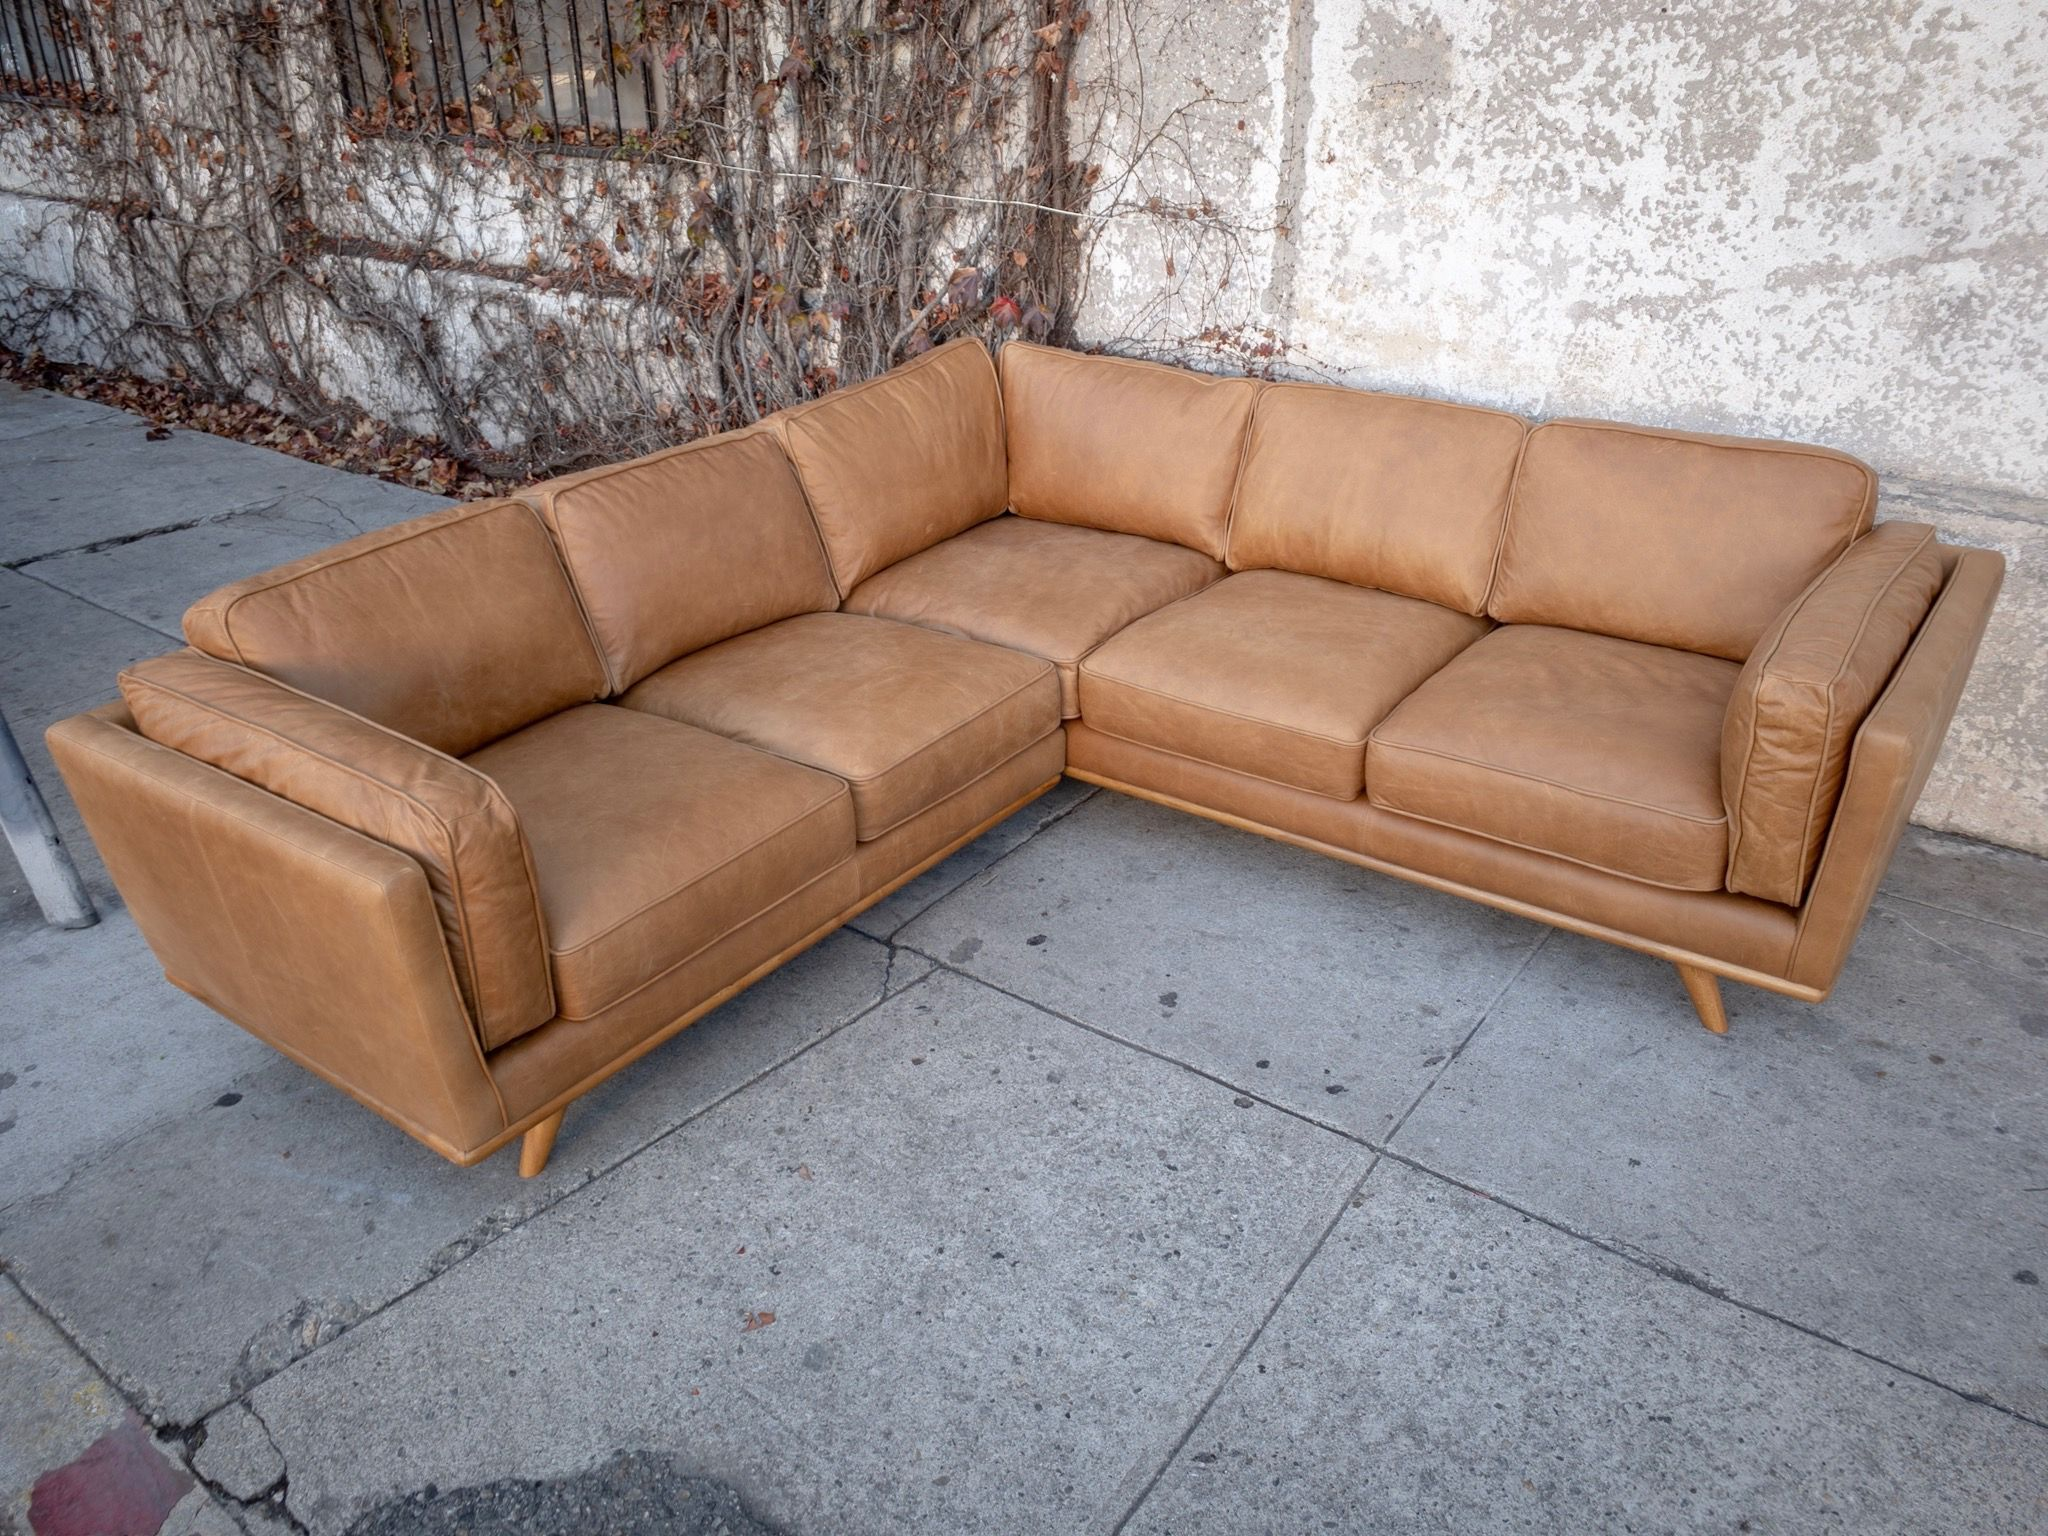 Melt Into Your Very Own Butterscotch And Caramel Leather Dream This Corner Sofa Is A Beautiful Example Of Modern Furn Leather Sectional Sectional Stylish Sofa